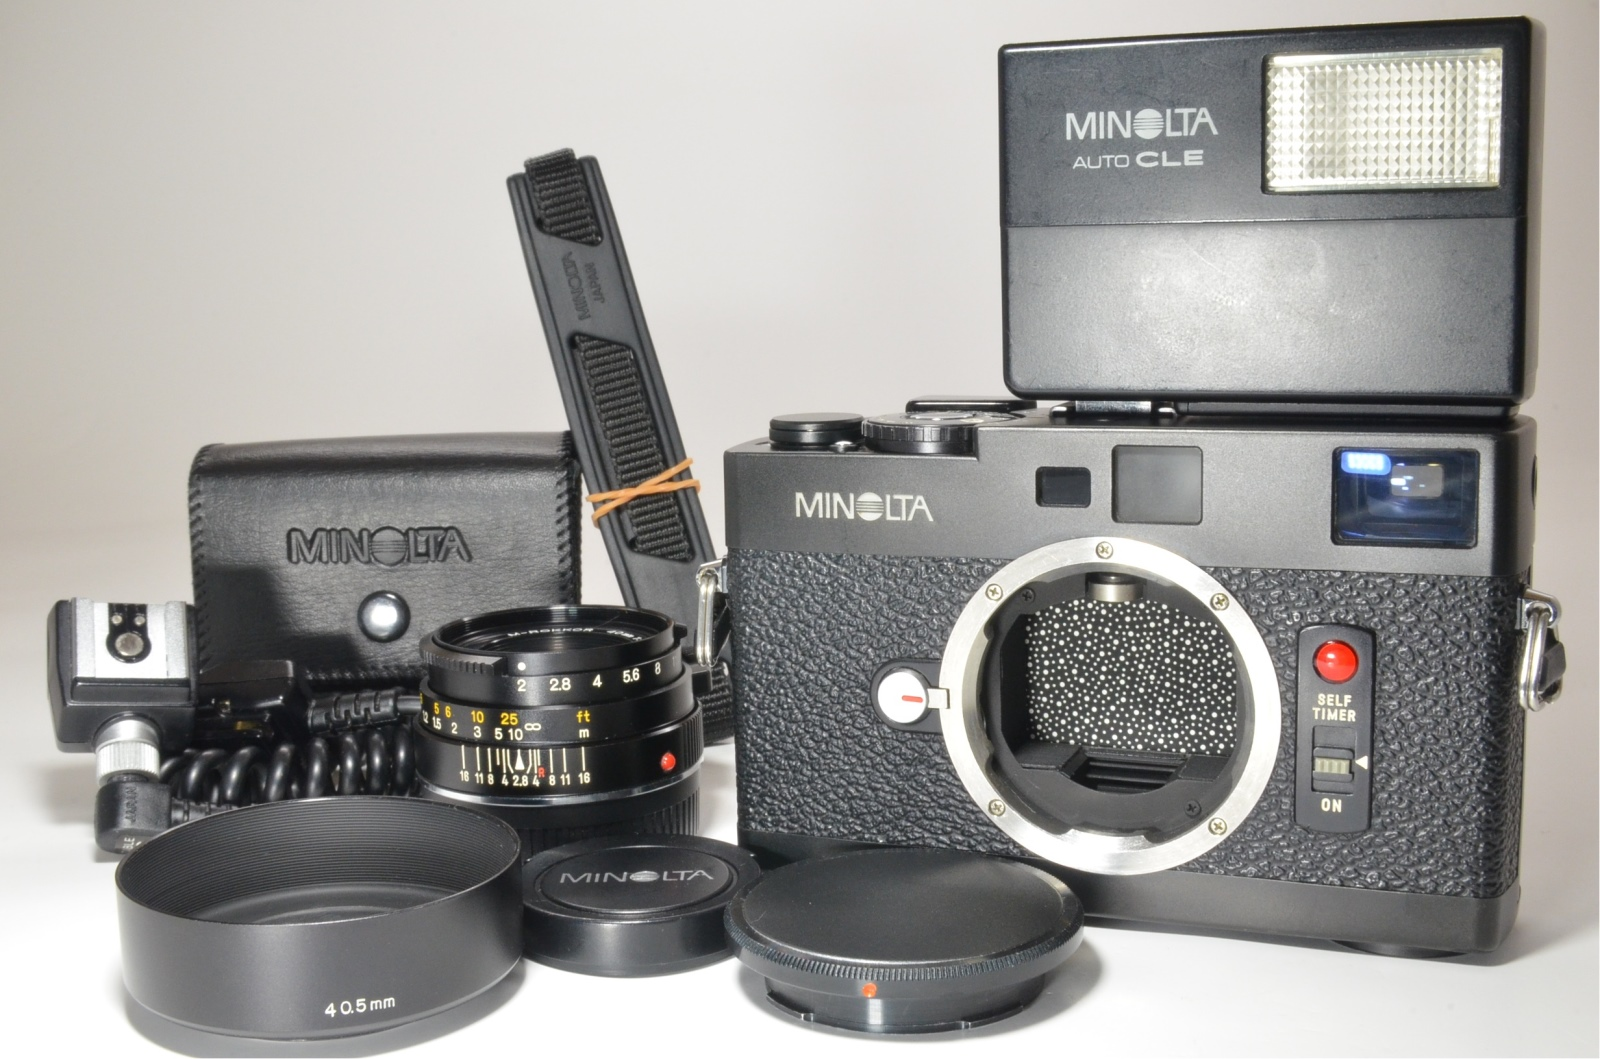 minolta cle with m-rokkor 40mm f2, strap, flash, cable oc